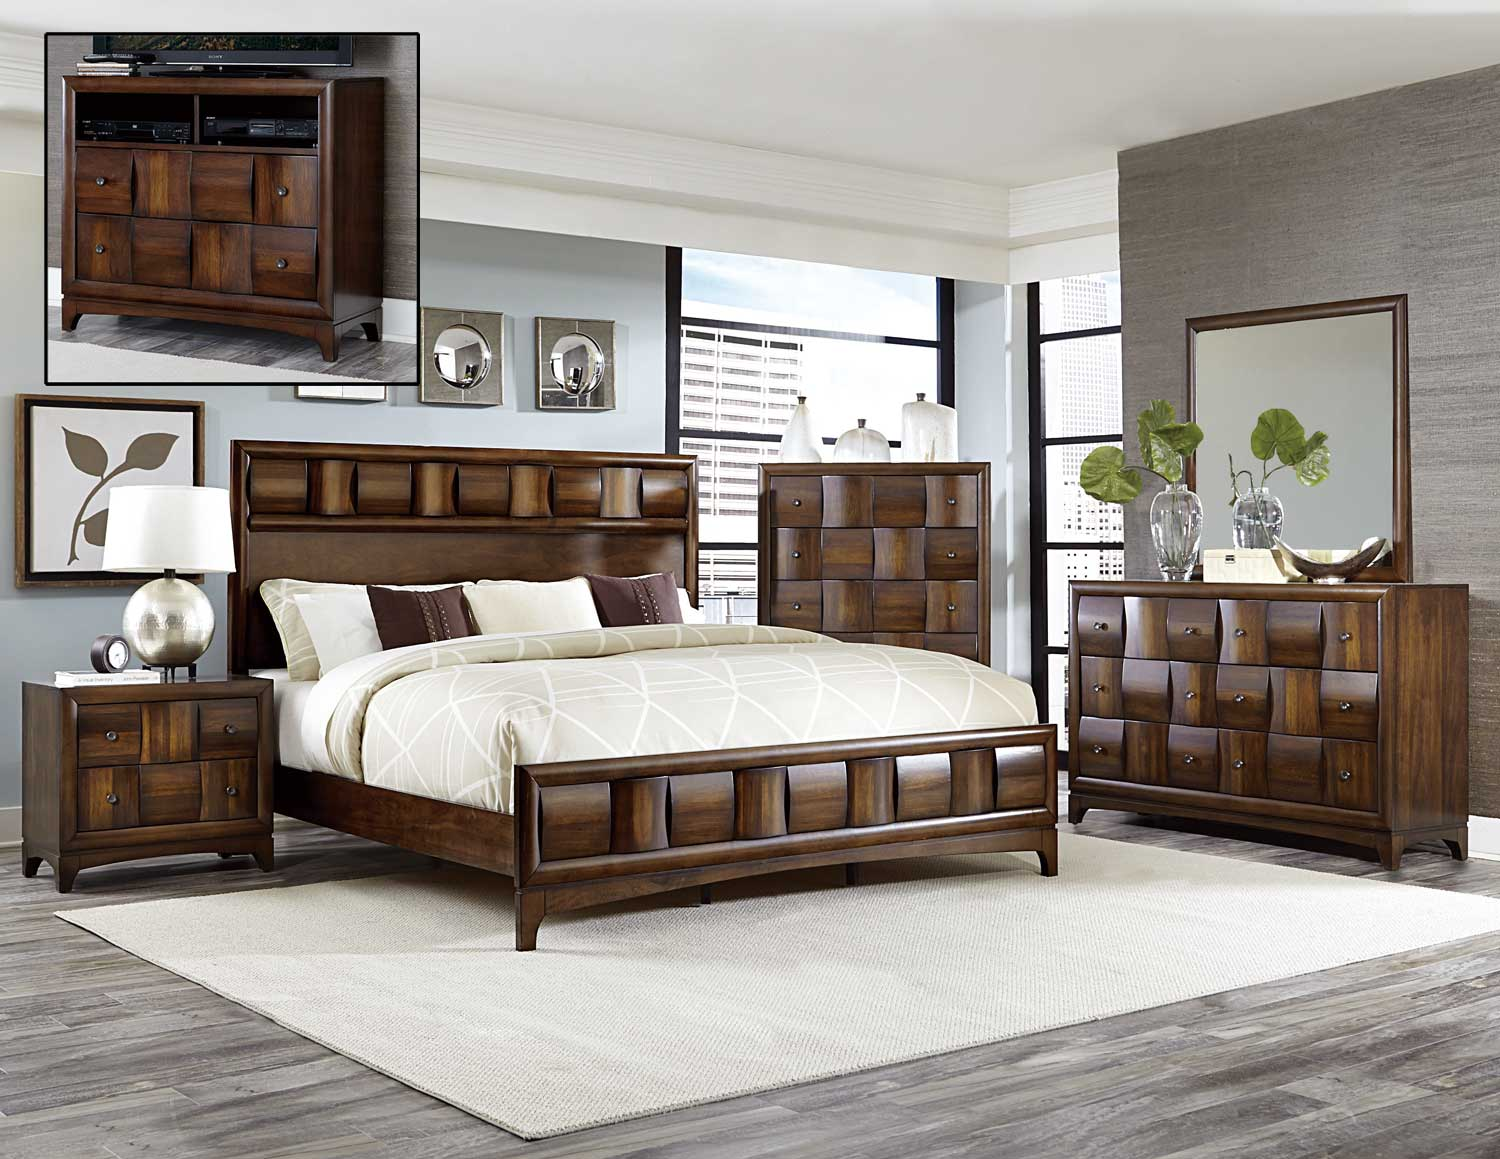 Homelegance Porter Bedroom Set Warm Walnut 1852 Bedroom Set At